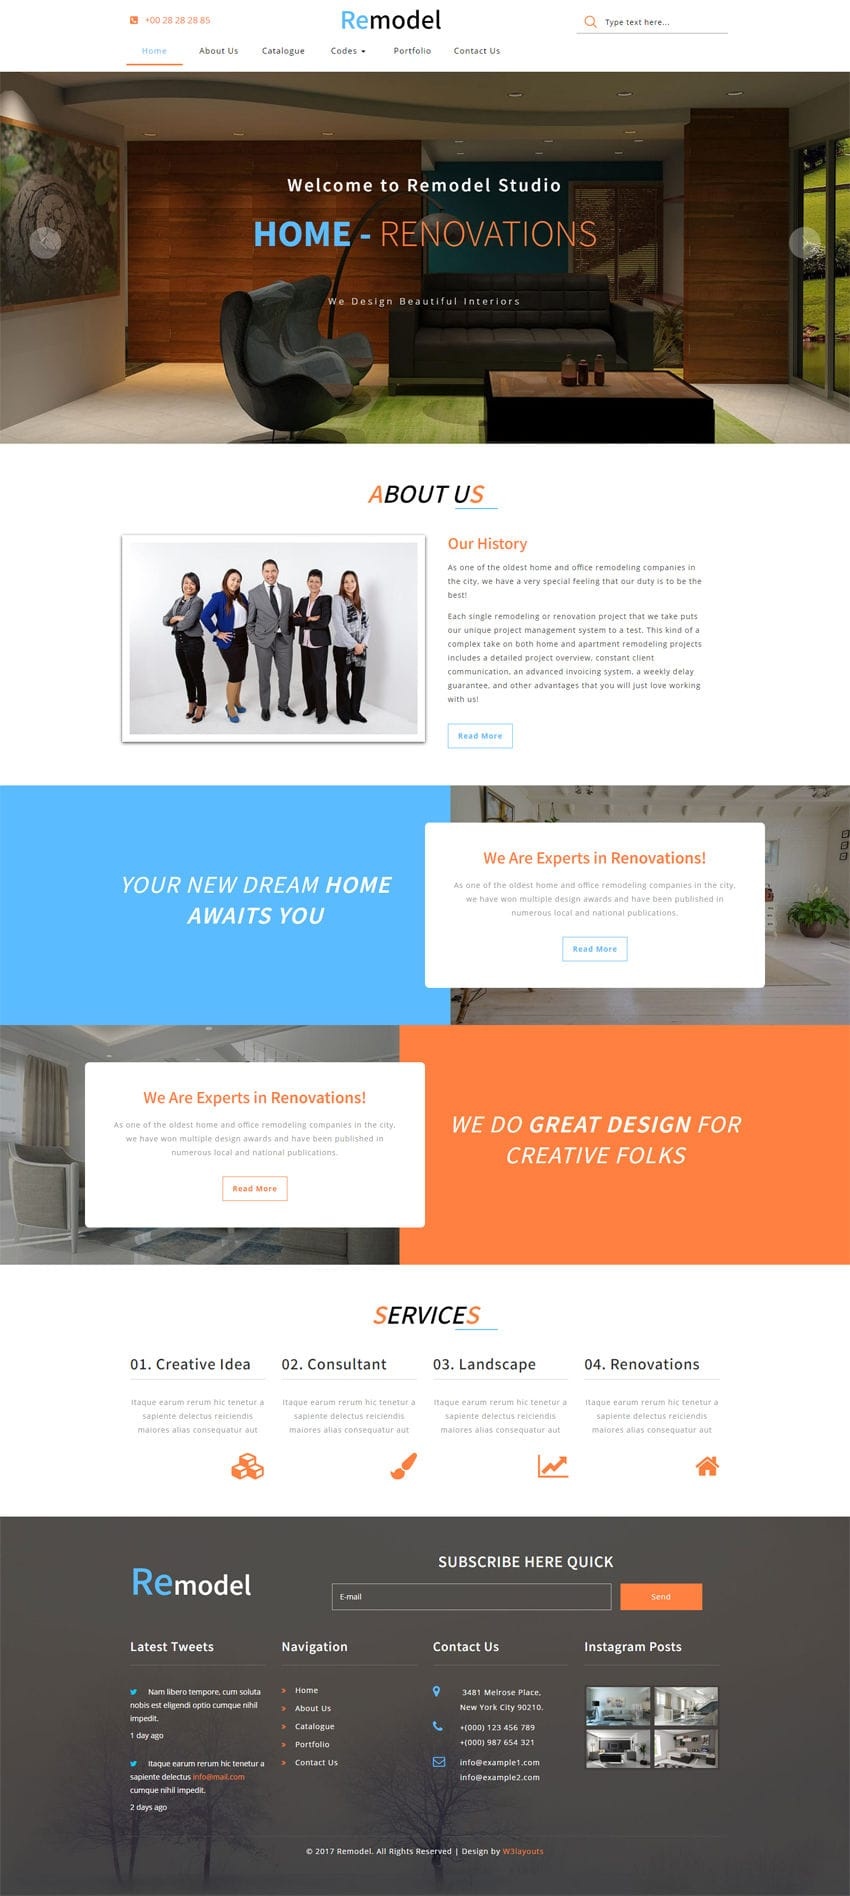 Remodel an interior category bootstrap responsive web template for Interior design responsive website templates edge free download